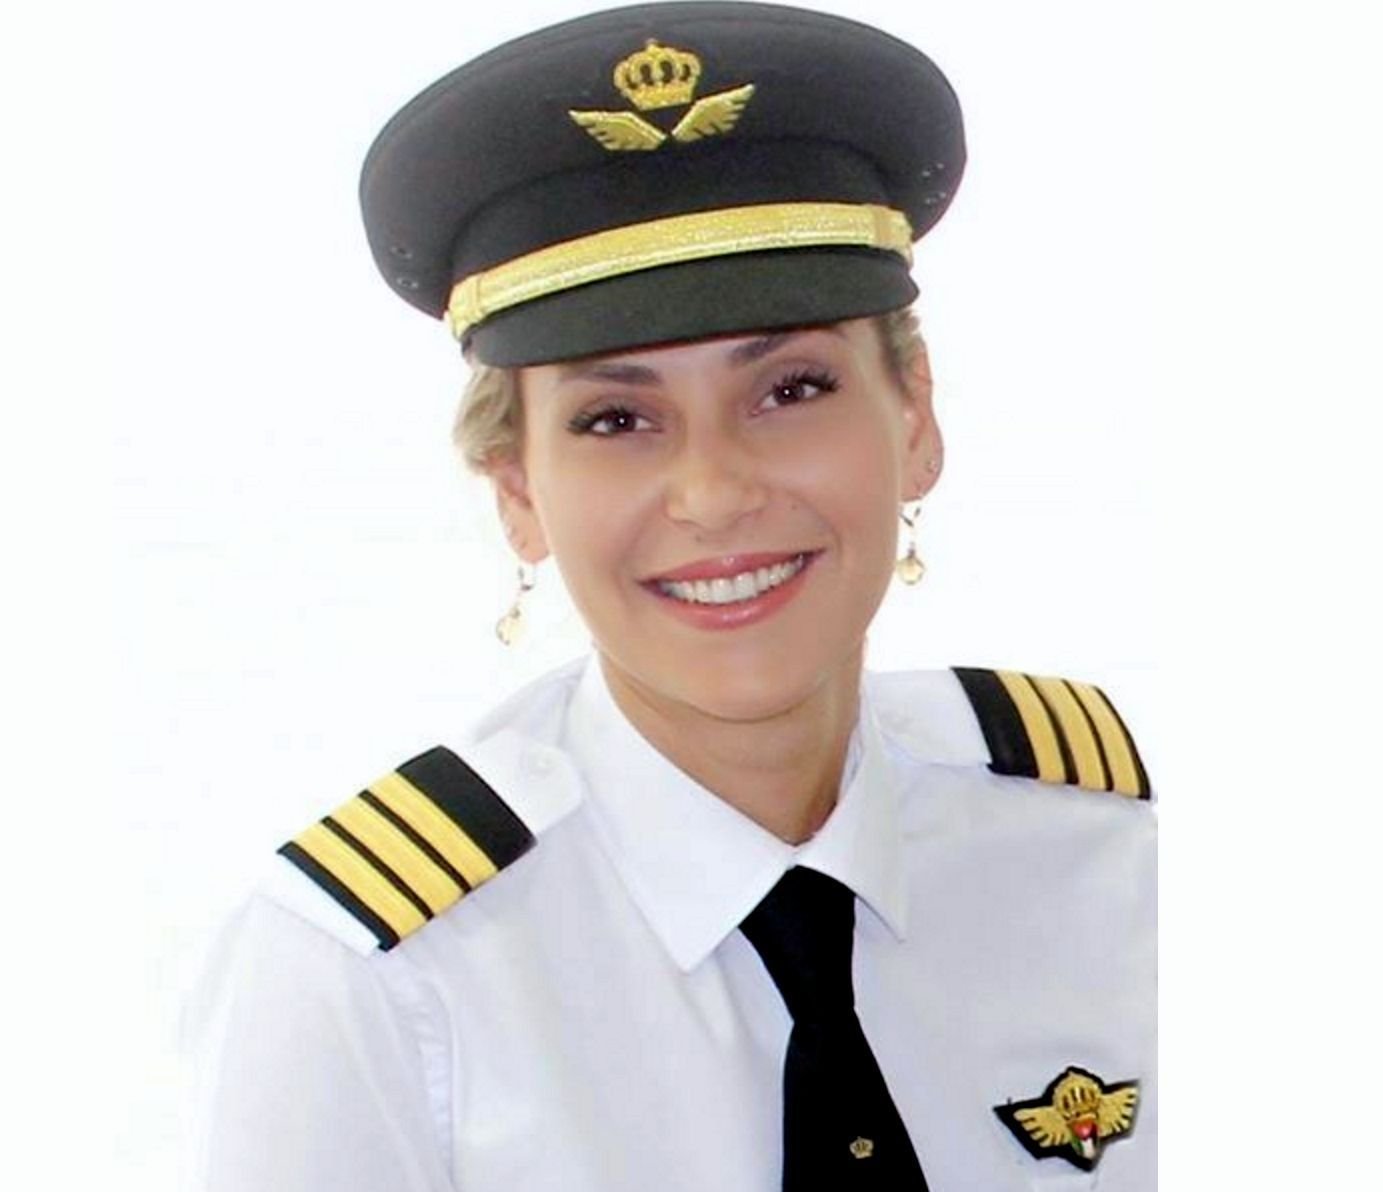 Alia Twal, a first officer who flies for Royal Jordanian Airlines